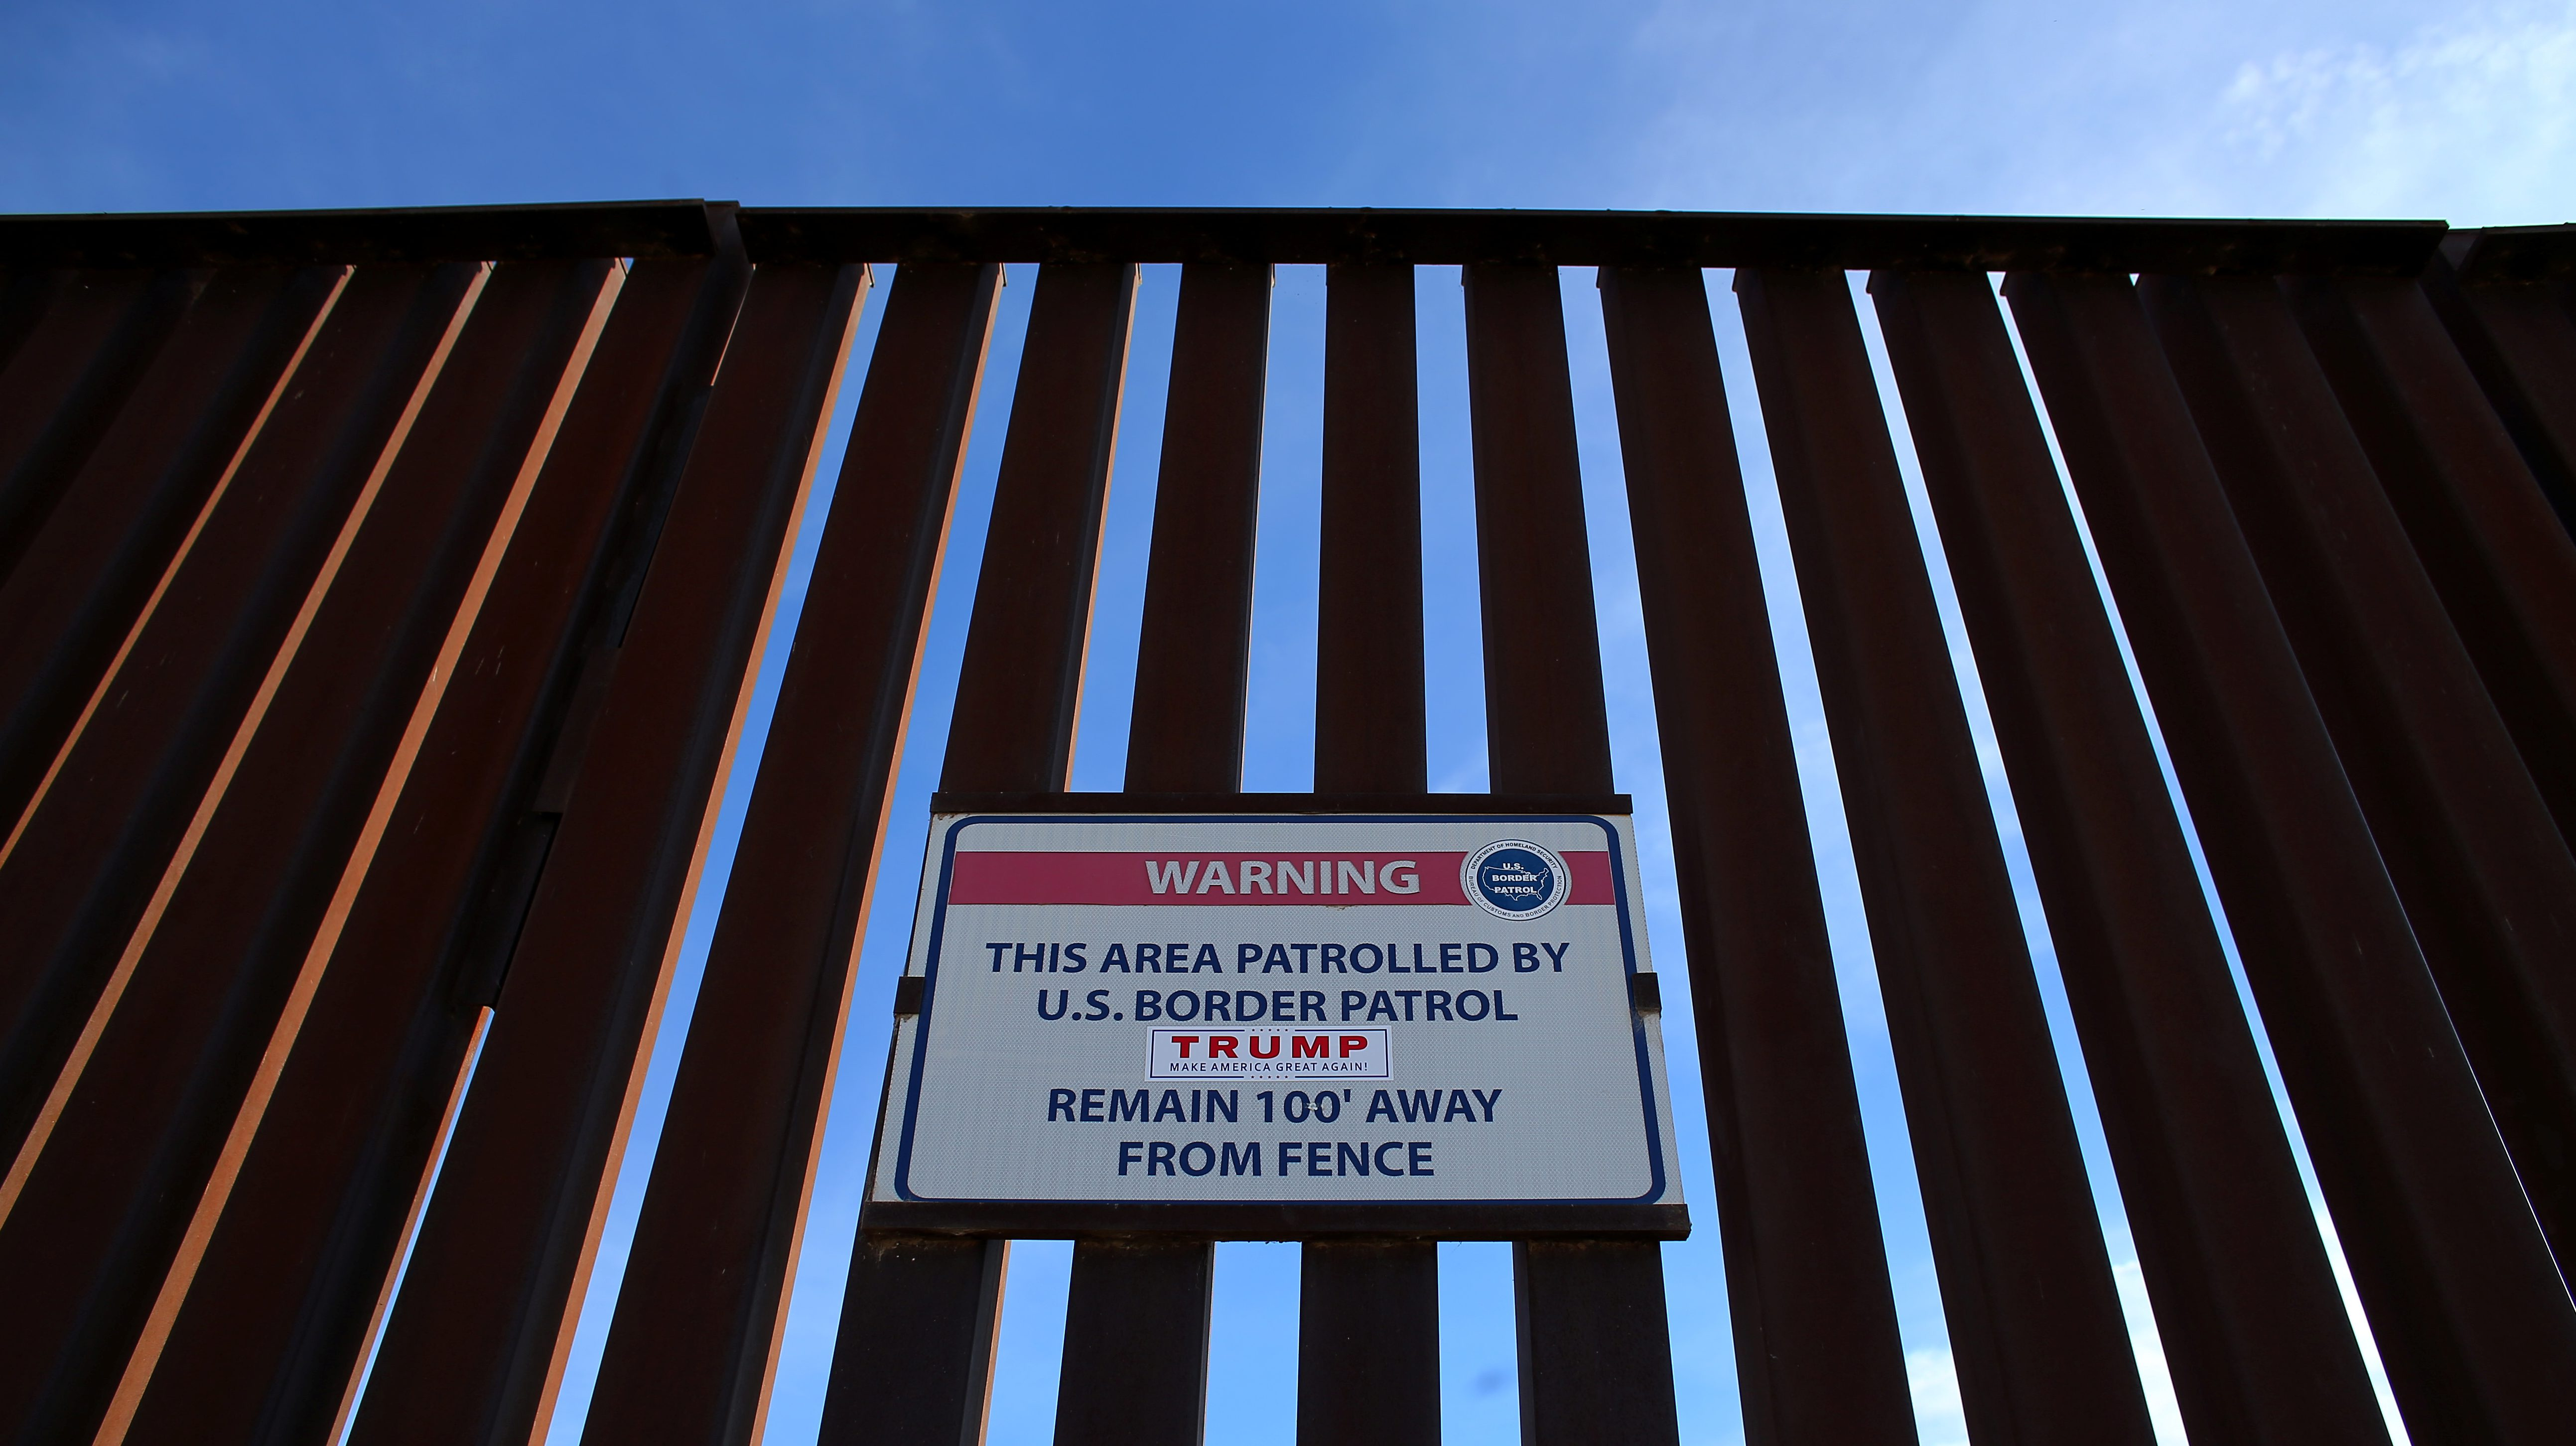 A Donald Trump for President campaign sticker is shown attached to a U.S. Customs sign hanging on the border fence between Mexico and the United States